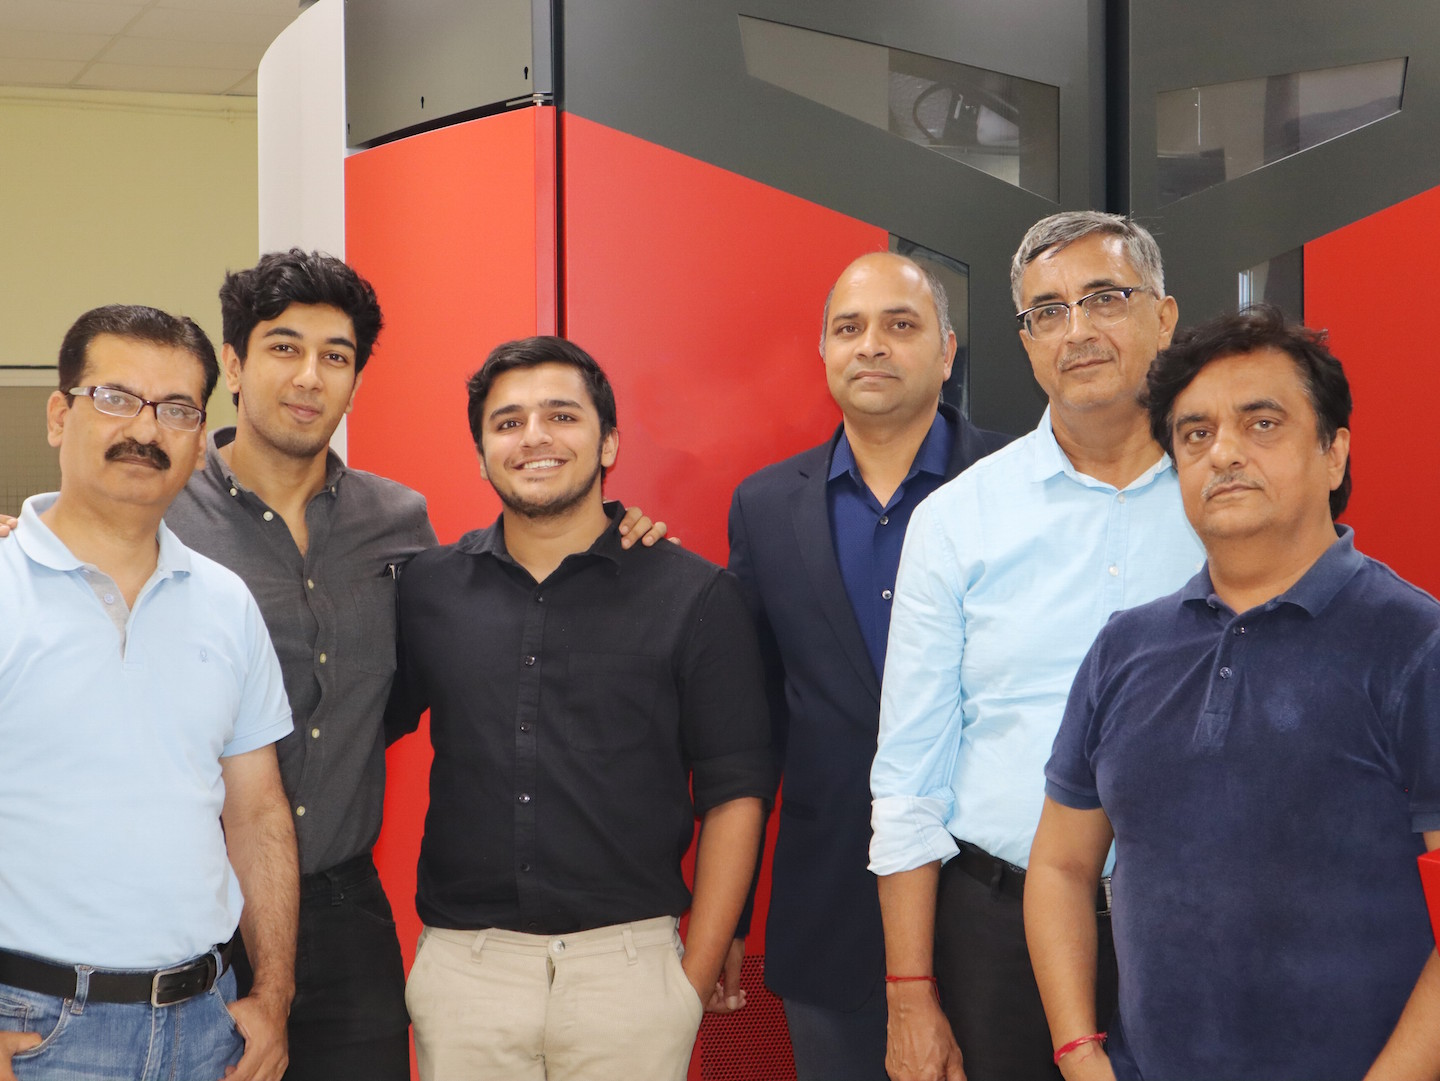 From left to right: Shailendar Kapoor (Manager of the Hora Arts Centre Noida plant), Shivam Hora & Ramneek Hora, Vikram Saxena (General Manager Sales of Xeikon India), Pradeep Hora (Managing Director Hora Arts Centre) and Sanjay Hora (Director Hora Arts Centre).